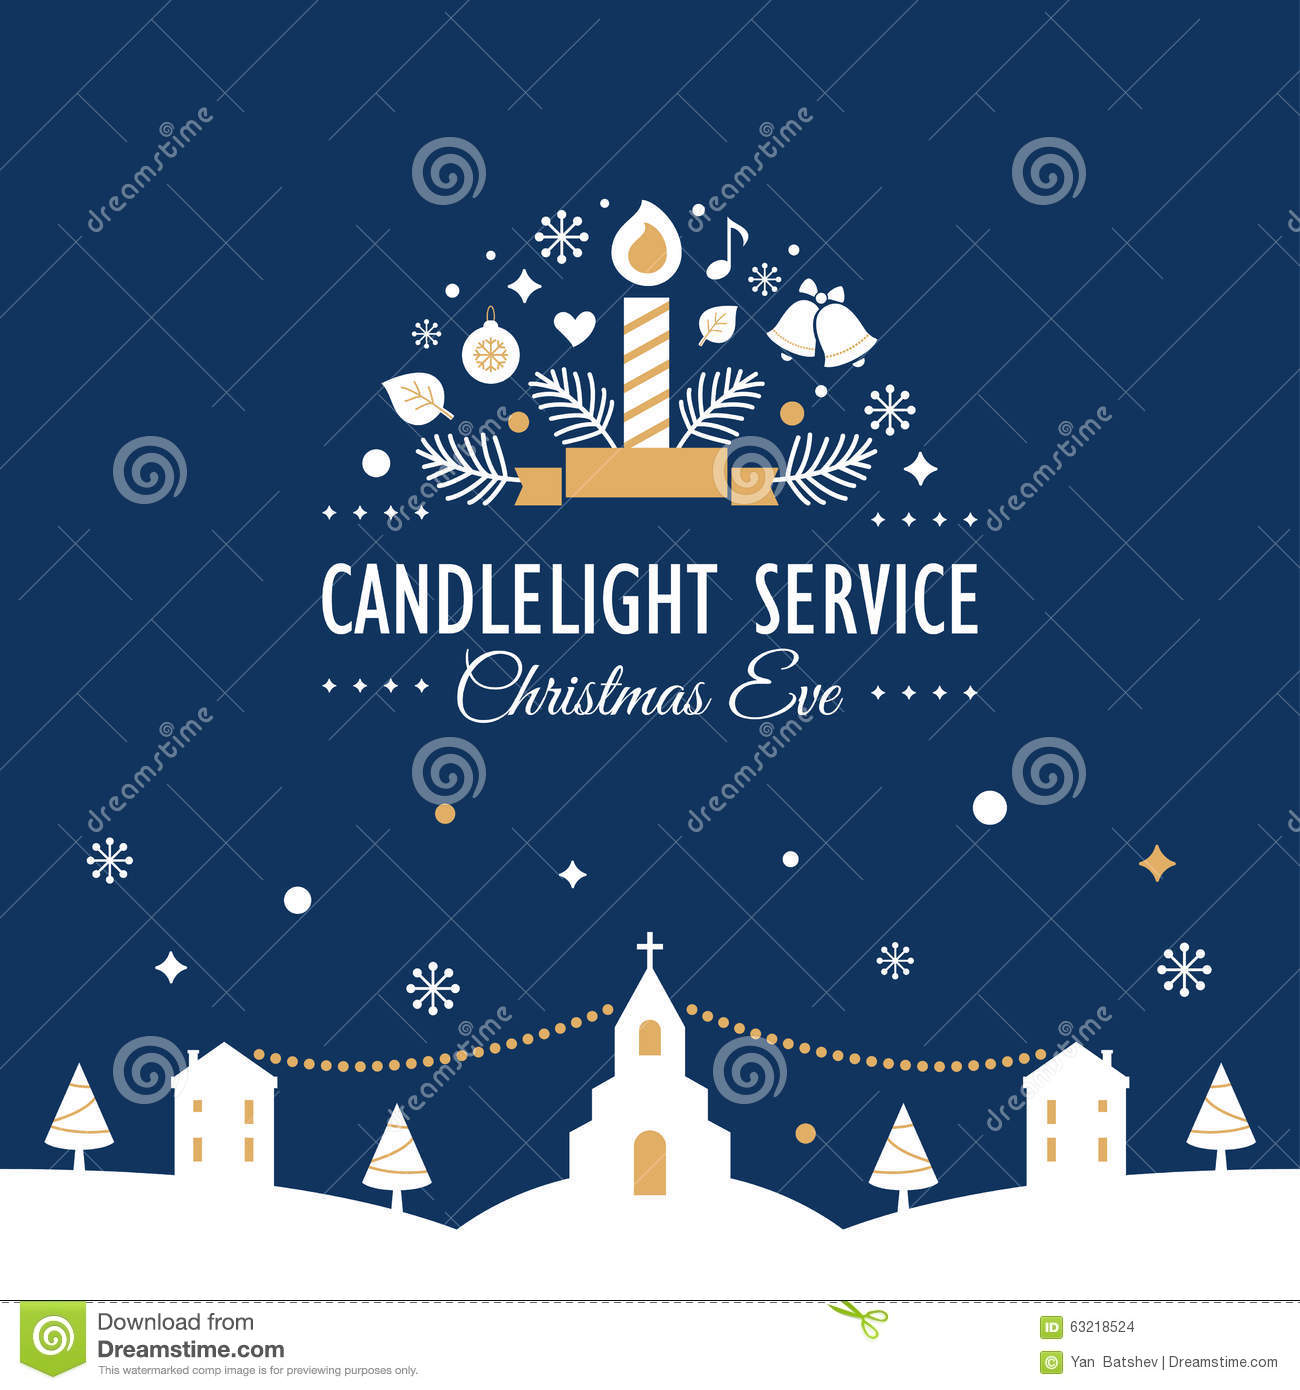 christmas eve service clipart - photo #6